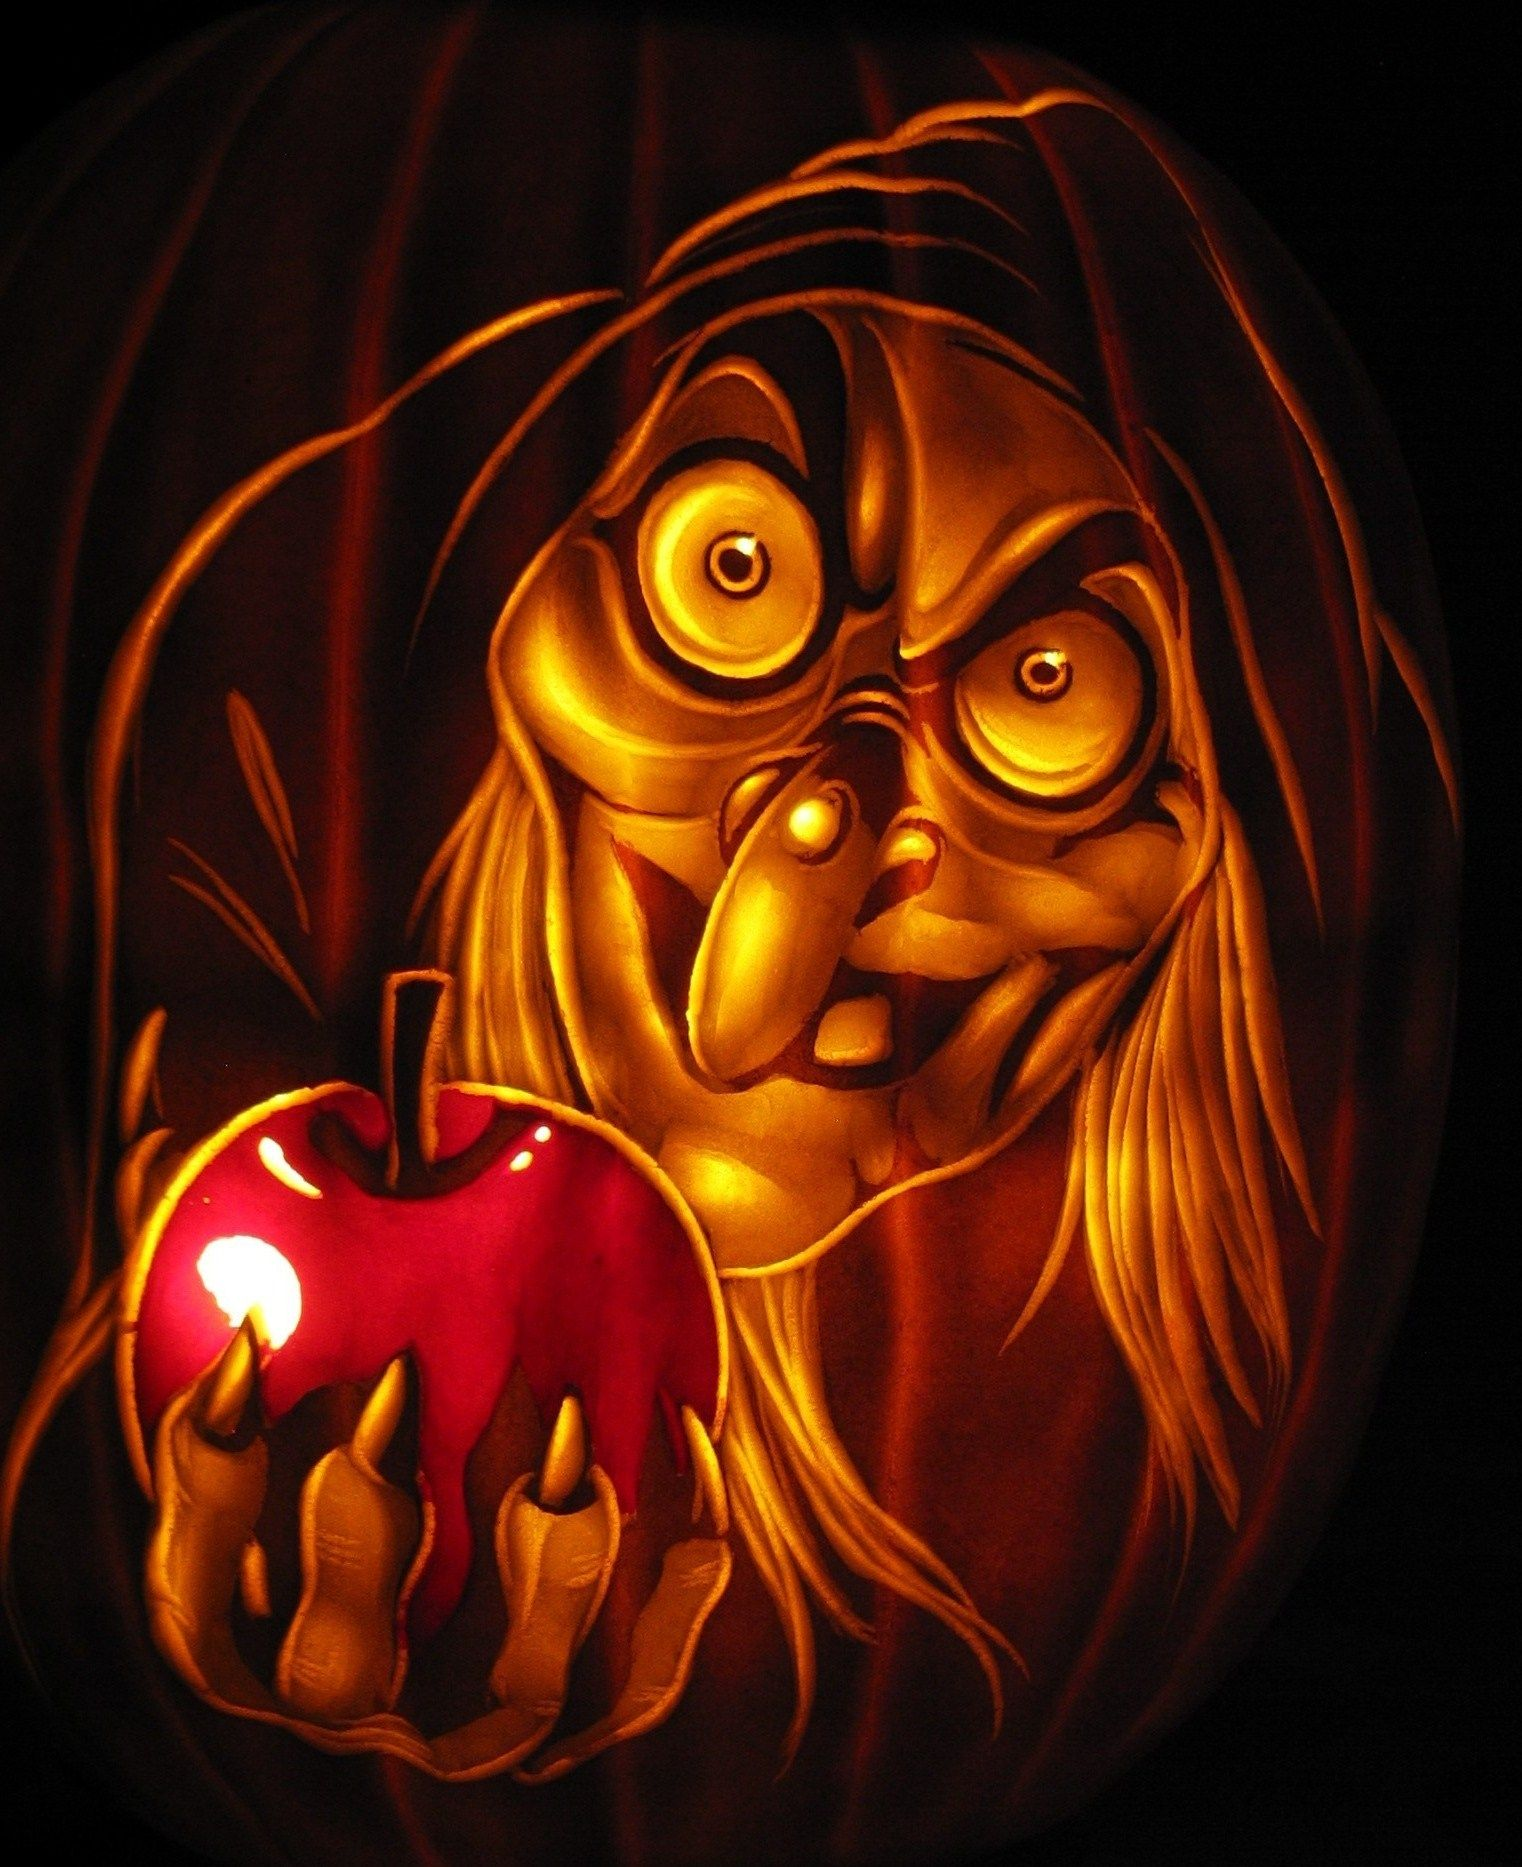 Stunning disney villains pumpkin carvings snow white